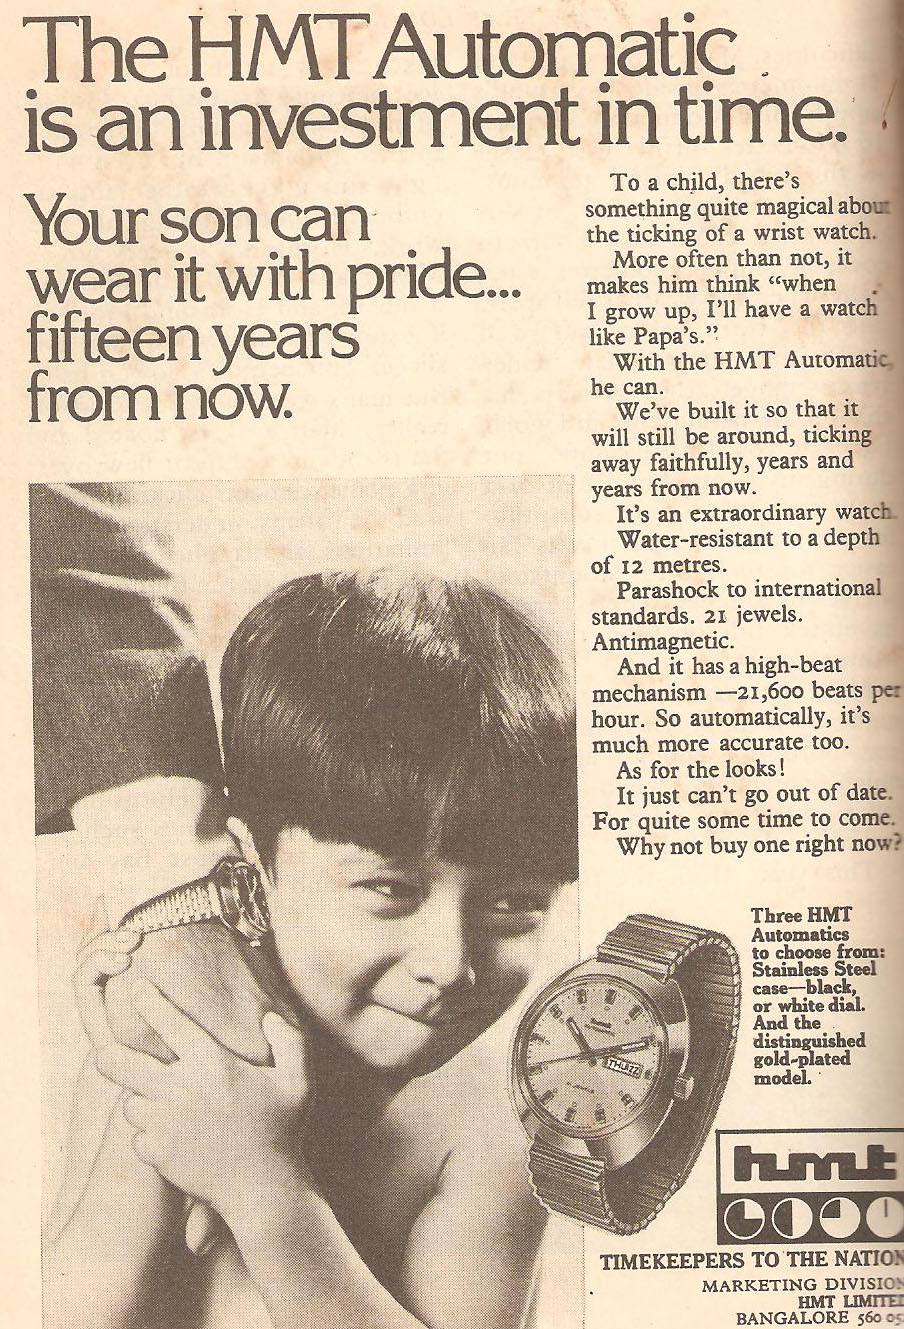 A vintage ad perfectly captures the emotional connection HMT made with Indians. Source:  classicindianads.blogspot.com